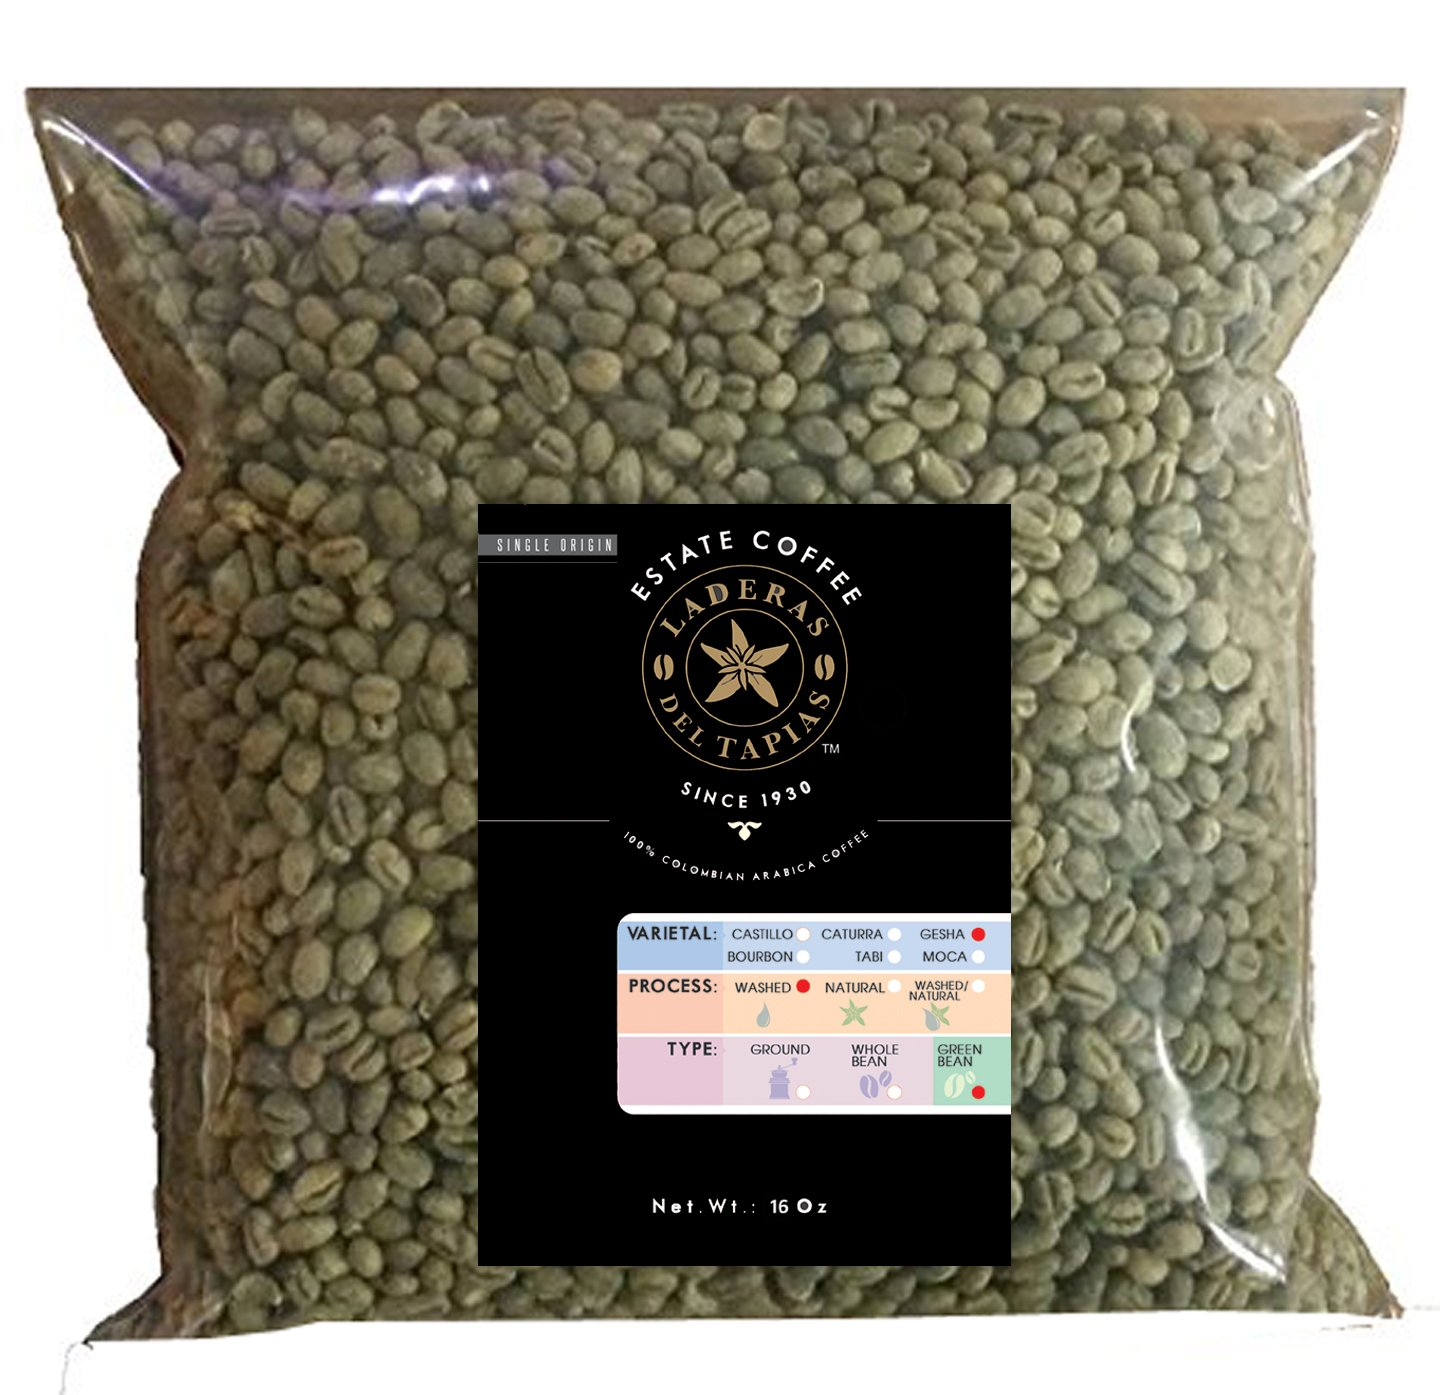 Premium Gesha Unroasted Coffee Beans 1 Lb - Estate Laderas del Tapias Colombia Image